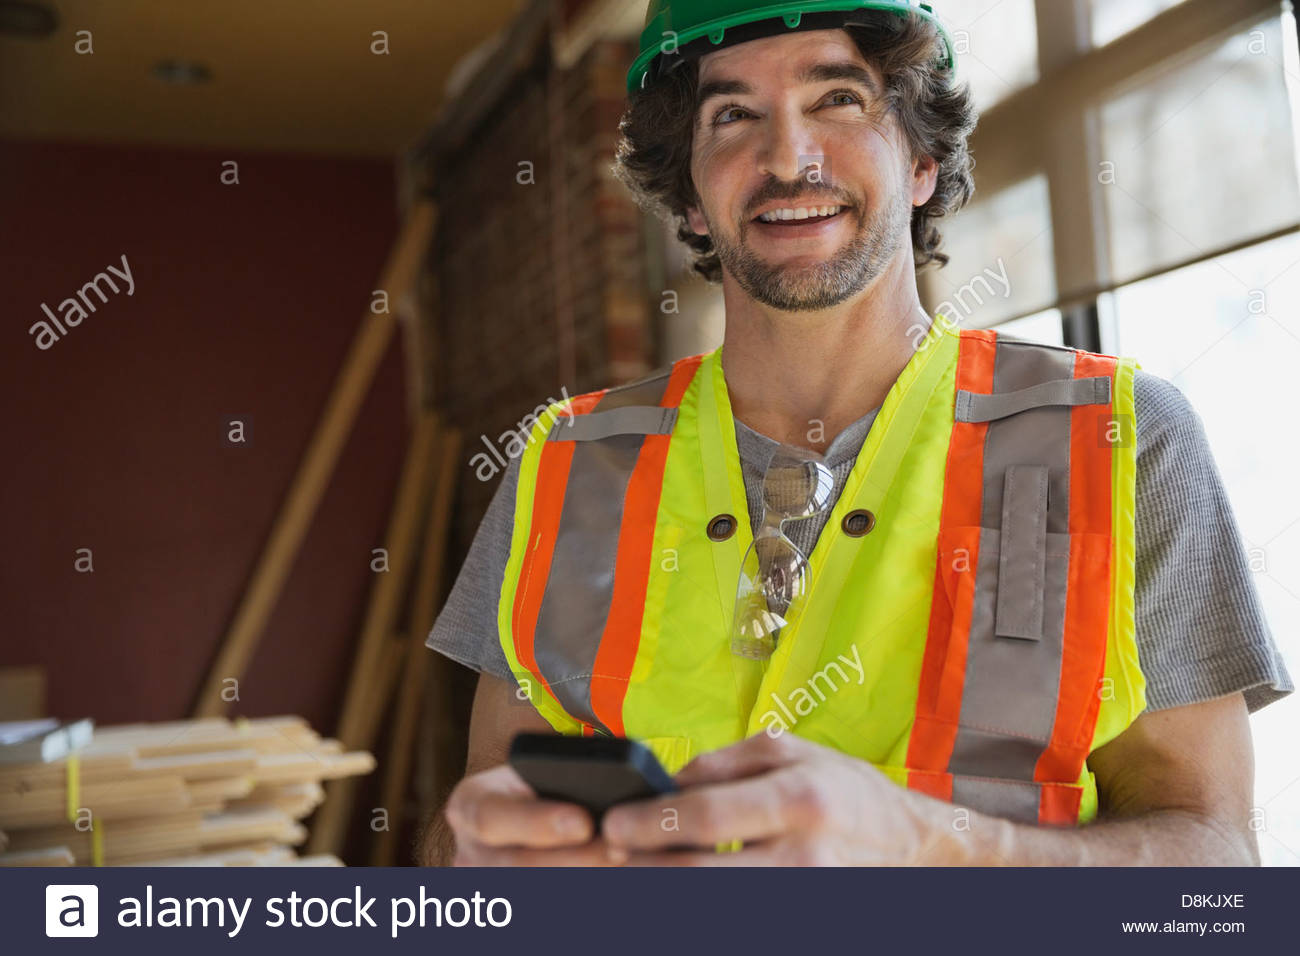 Tradesman using mobile phone at construction site - Stock Image